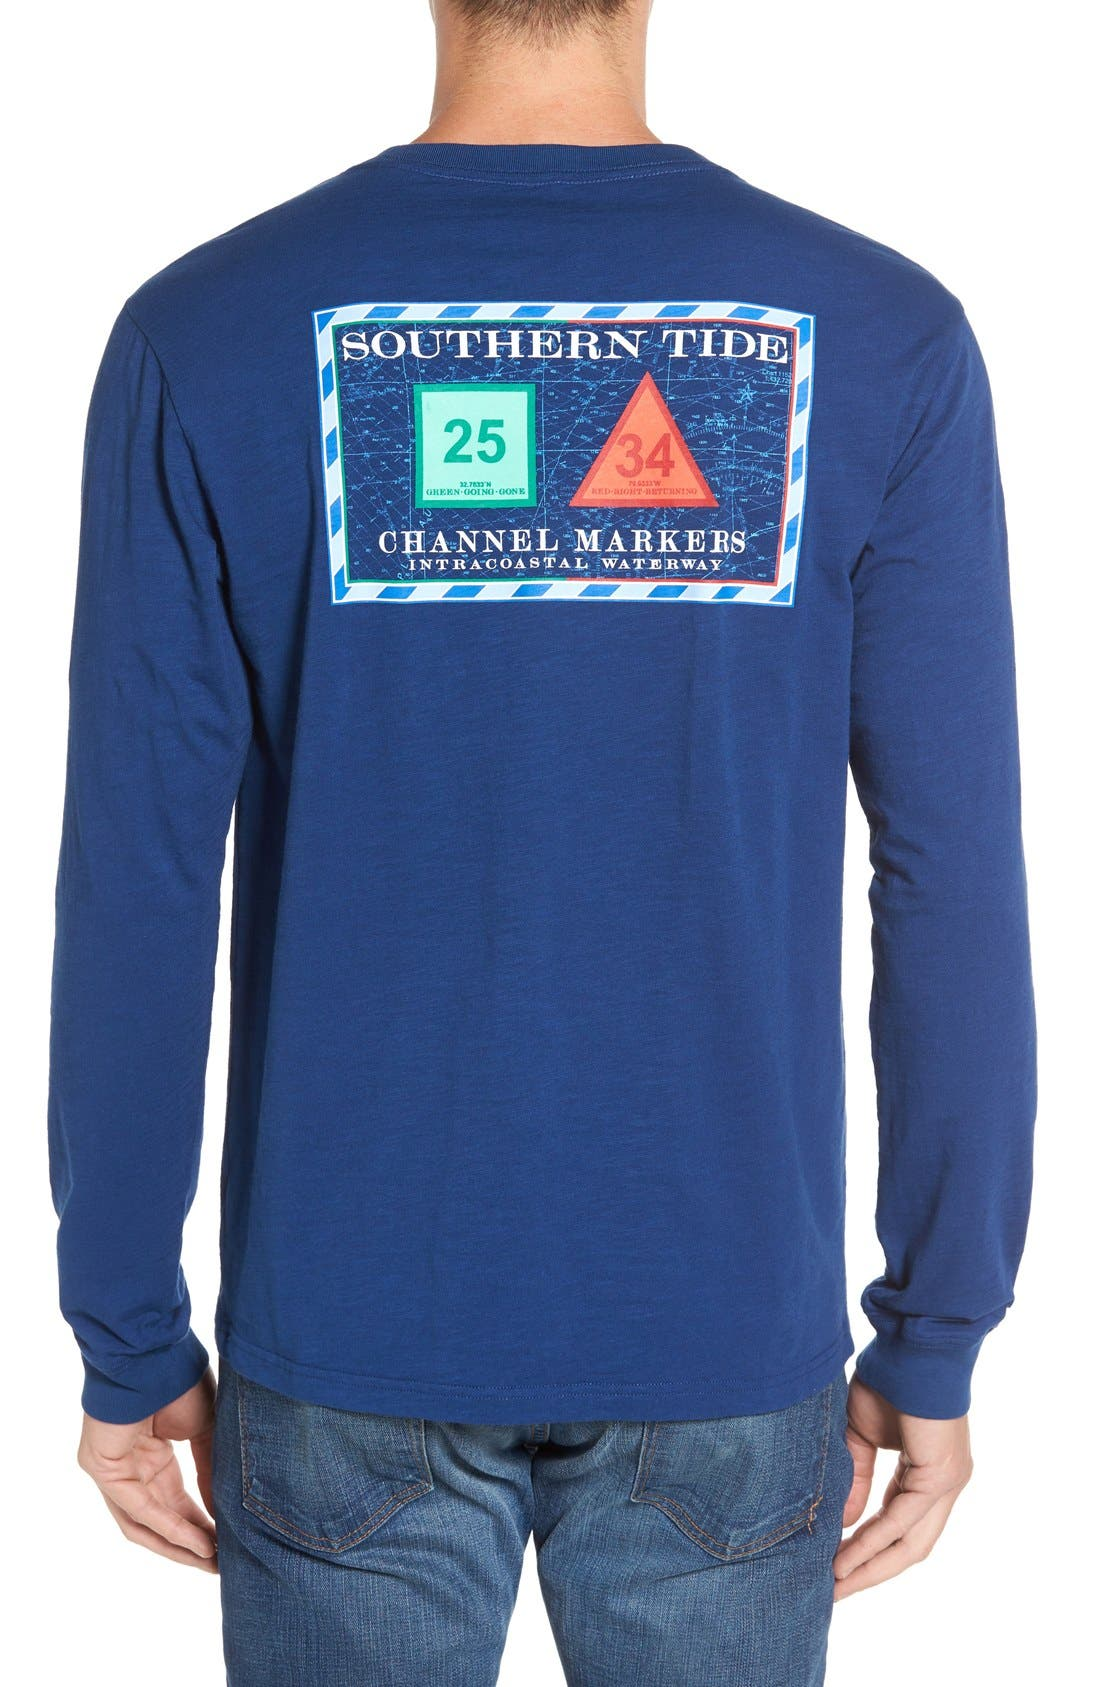 Southern Tide 'Channel Marker' Graphic Pocket Long Sleeve T-Shirt